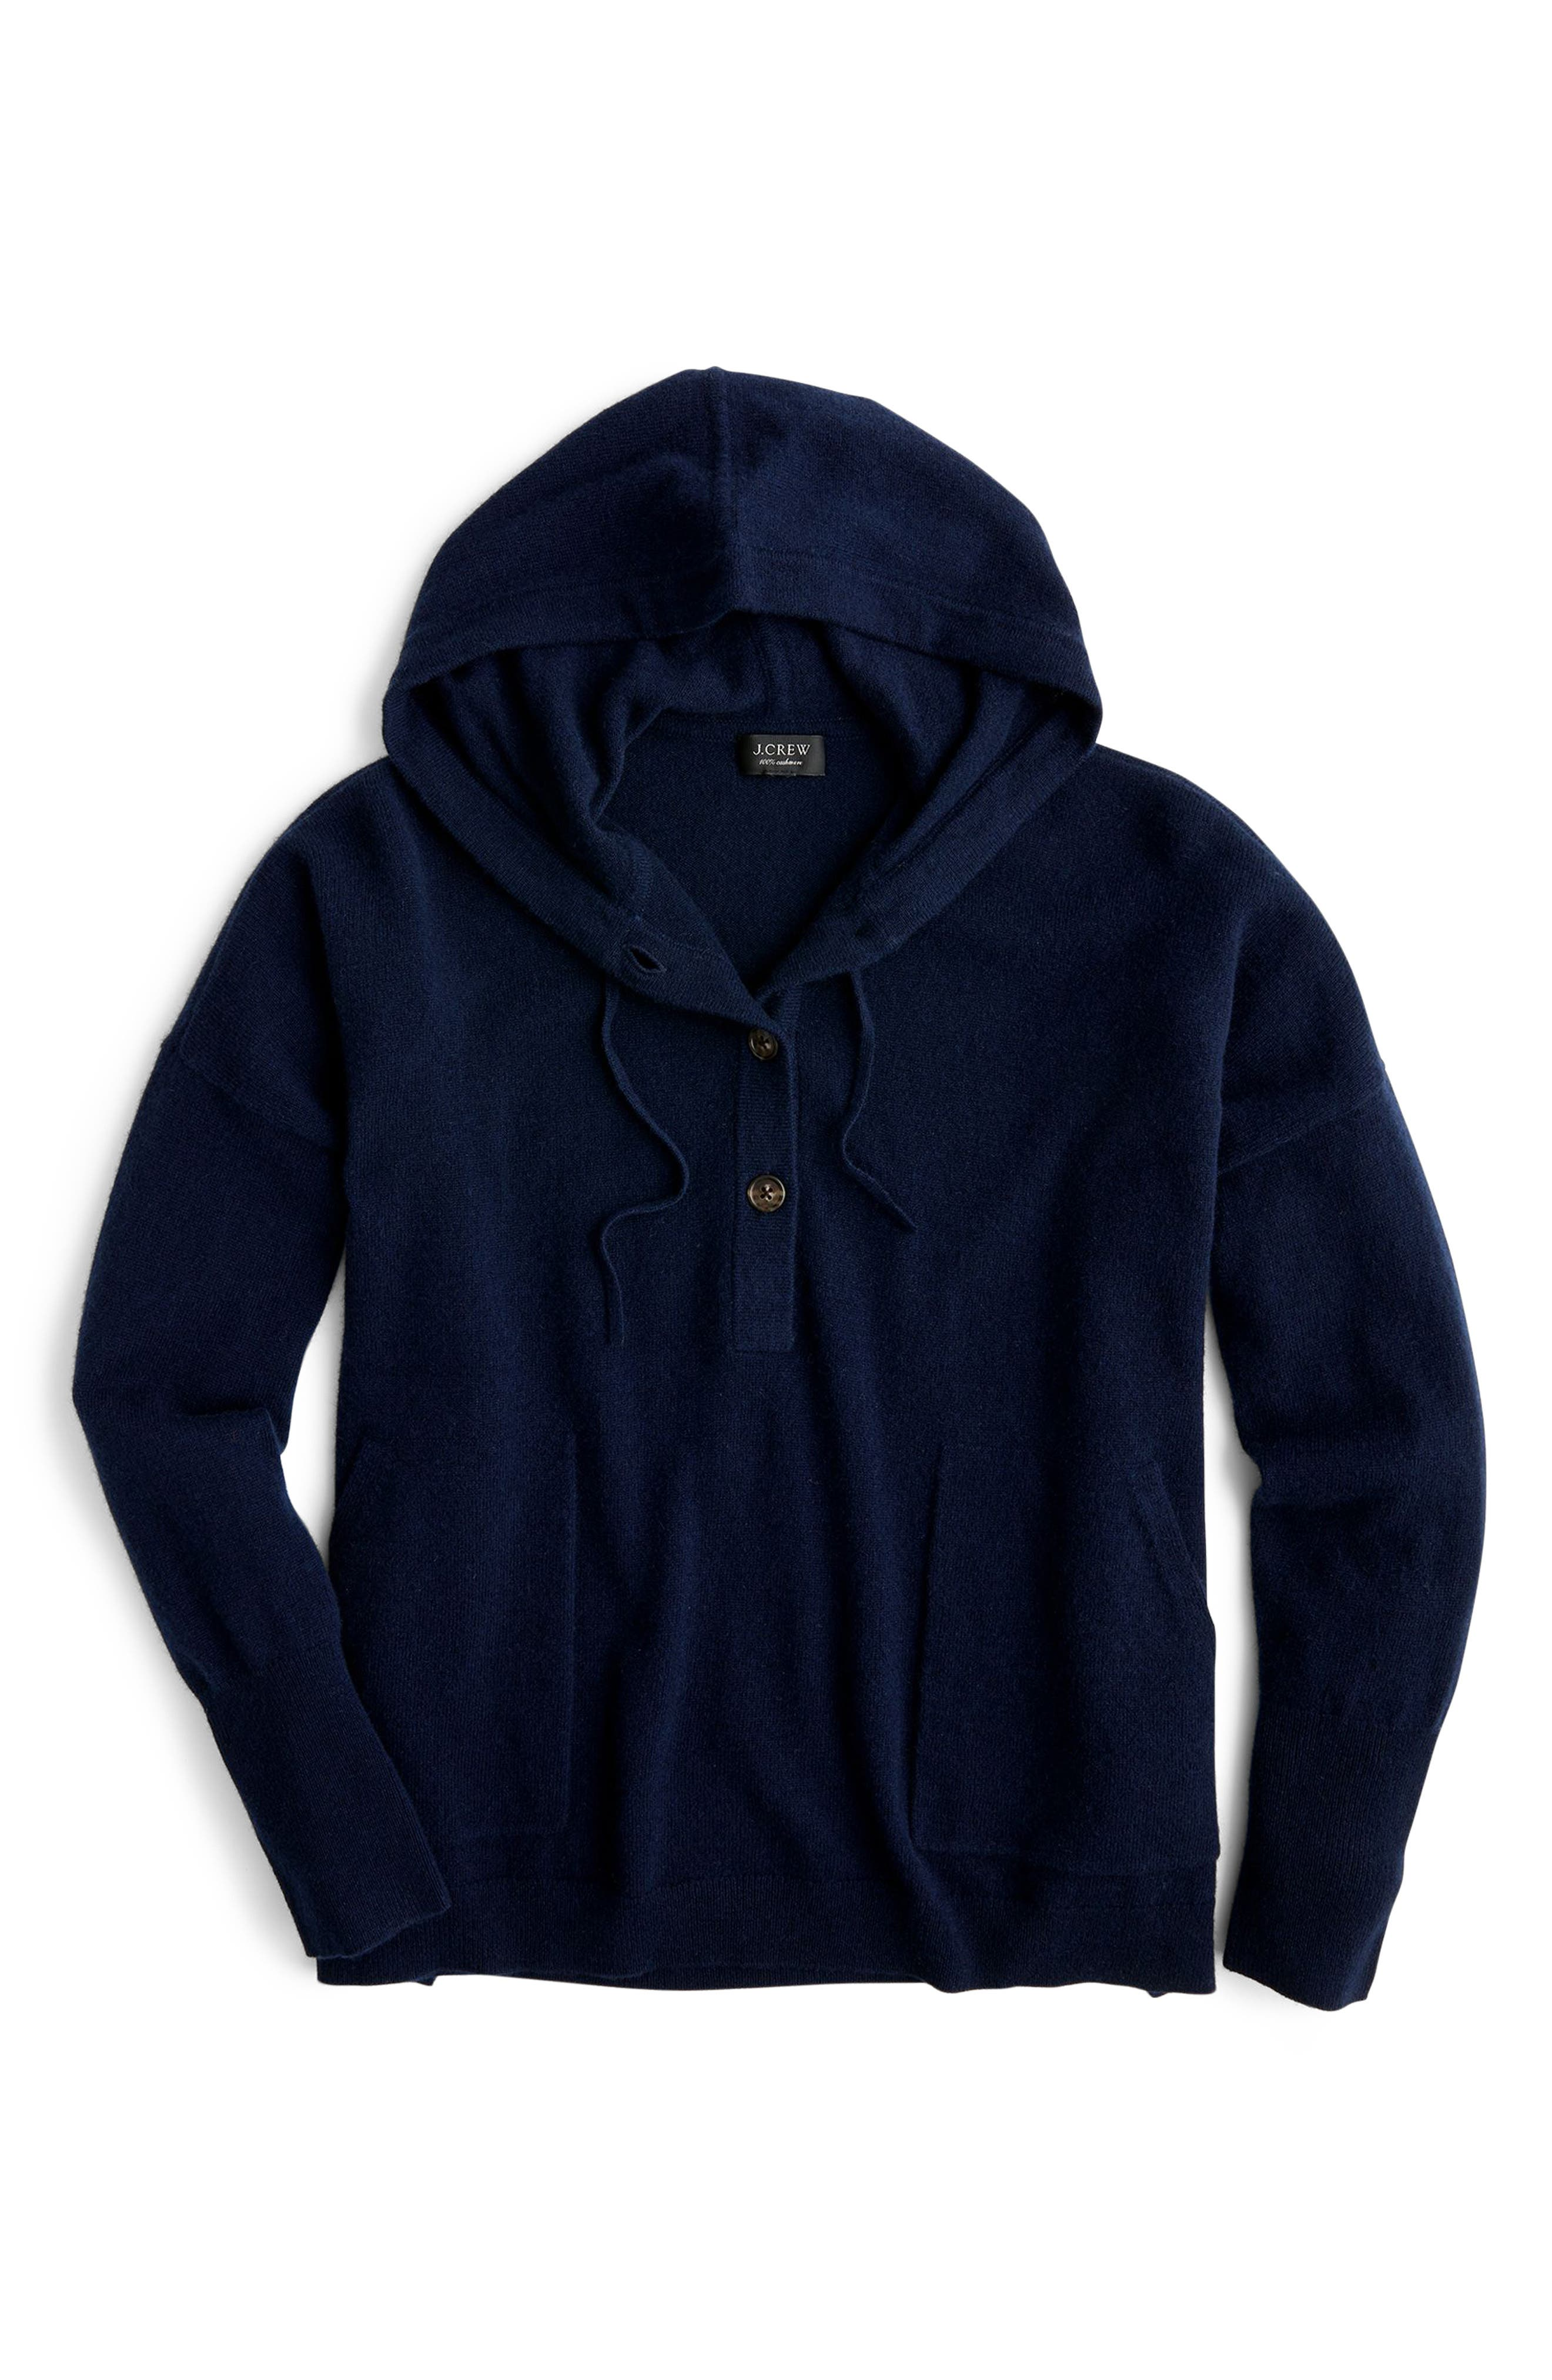 Everyday Cashmere Hoodie Sweater,                             Alternate thumbnail 5, color,                             460